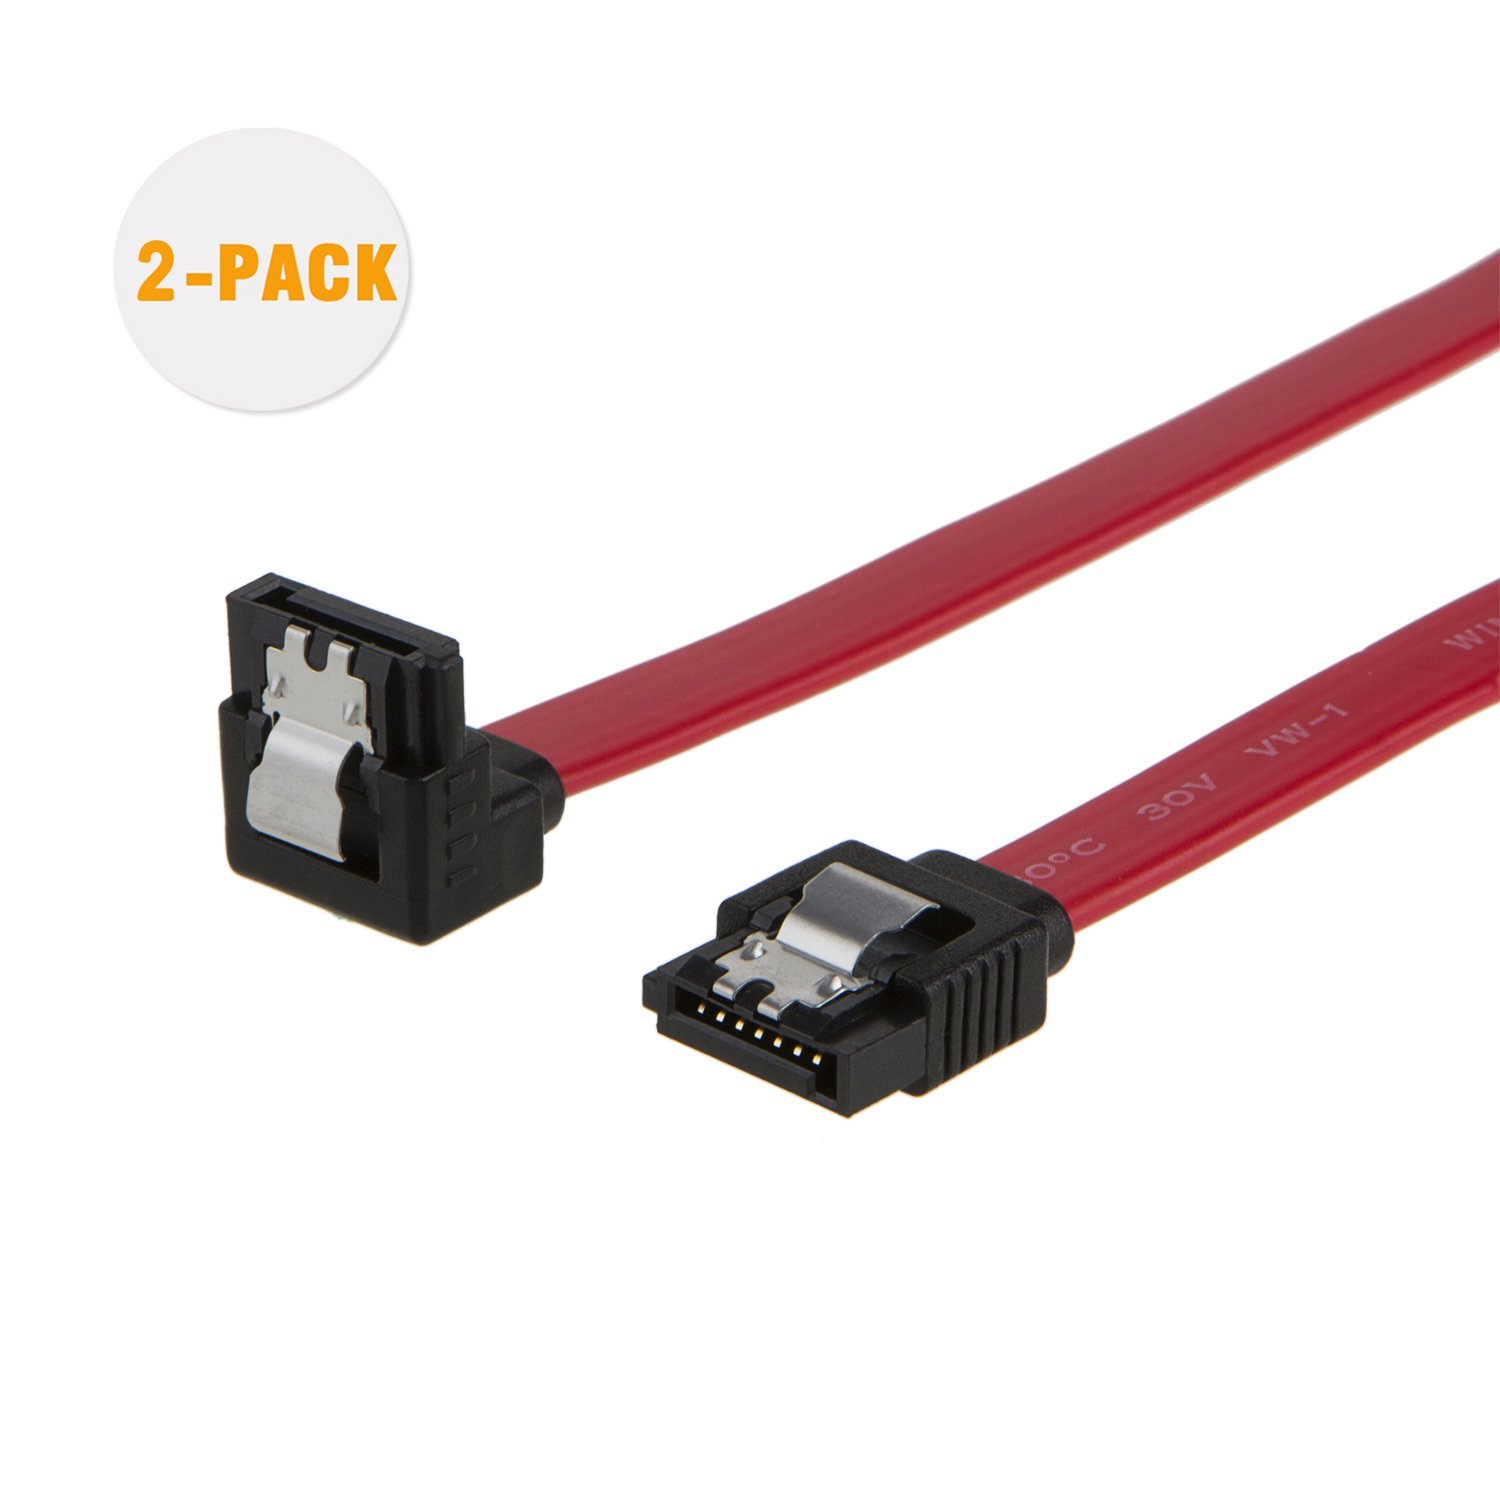 SATA III Cable, CableCreation [5-Pack] 8-inch SATA III 6.0 Gbps 7pin Female to Female Data Cable with Locking Latch, Red CS0083